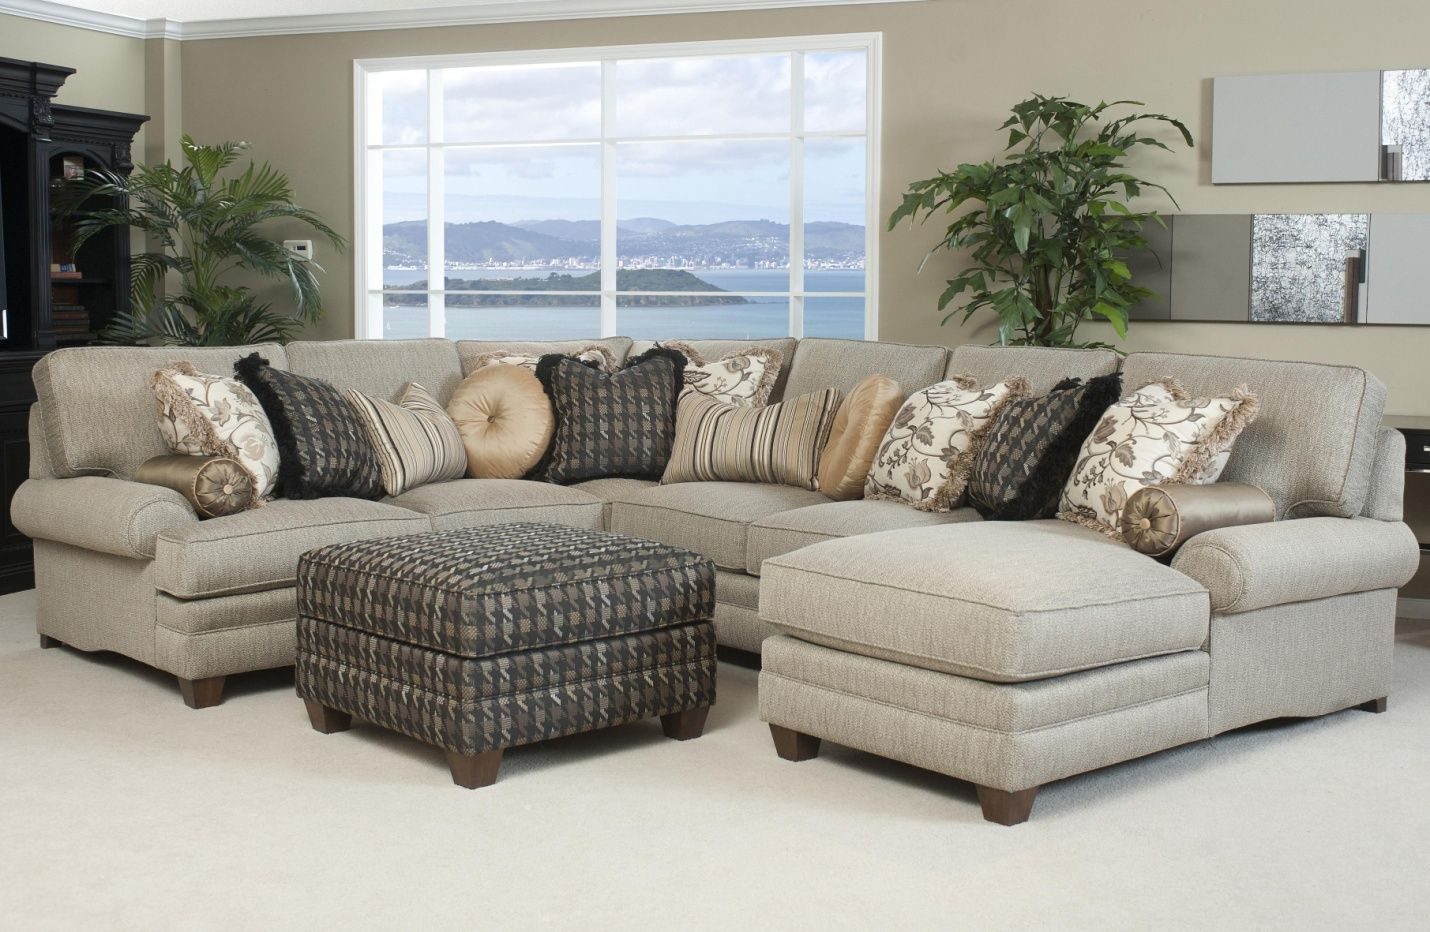 Superior Traditional Fabric Sectional Sofas   Most People Take Pride In Decorating  Our House To The Finest Of Our Ability. The Furnit